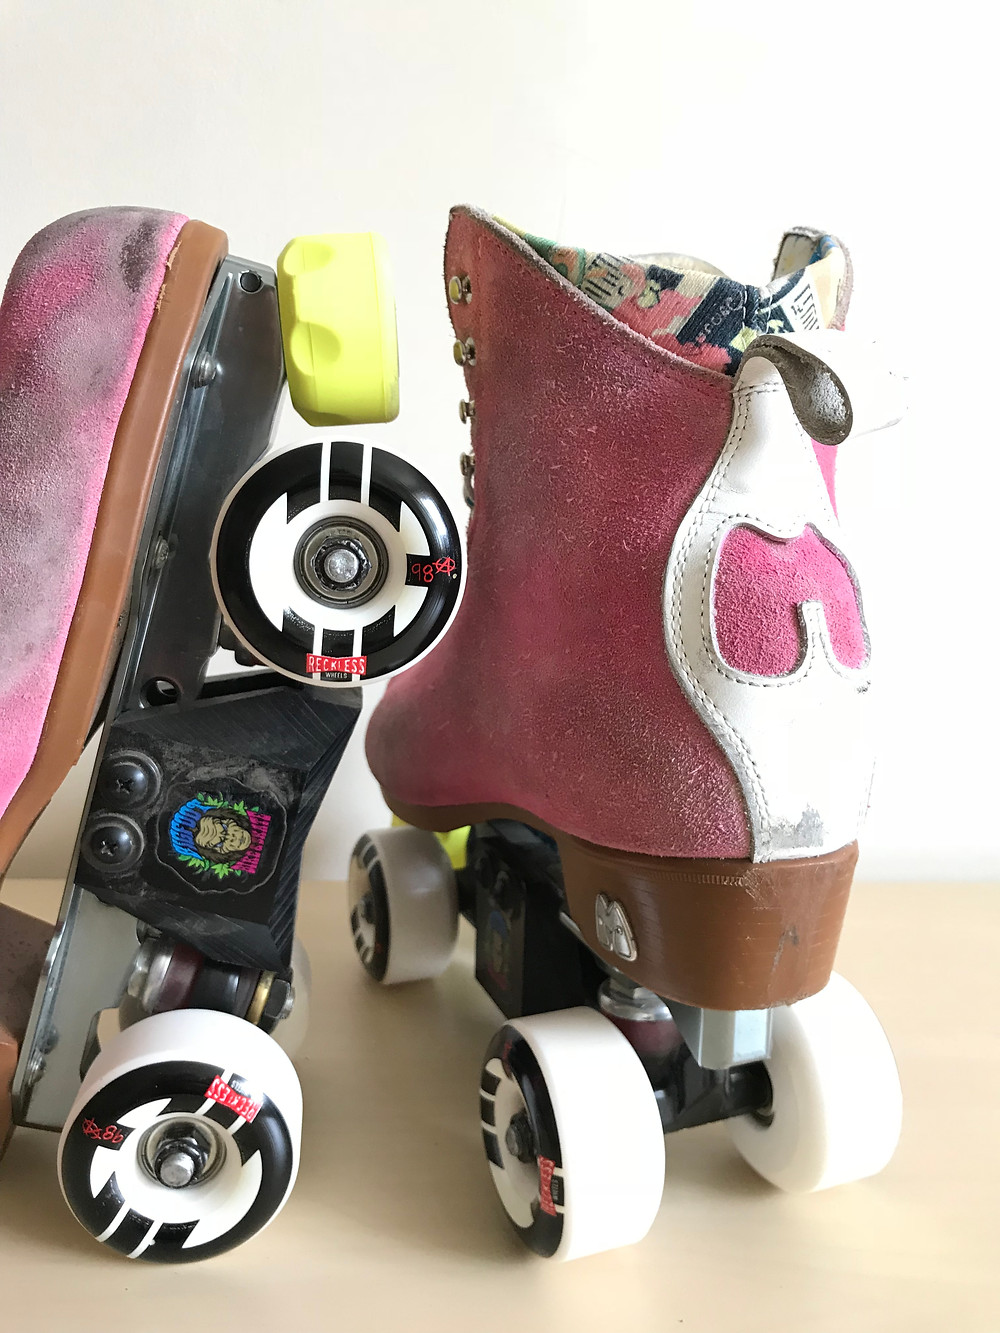 Chicks in Bowls x Reckless Park wheels 58mm 98a